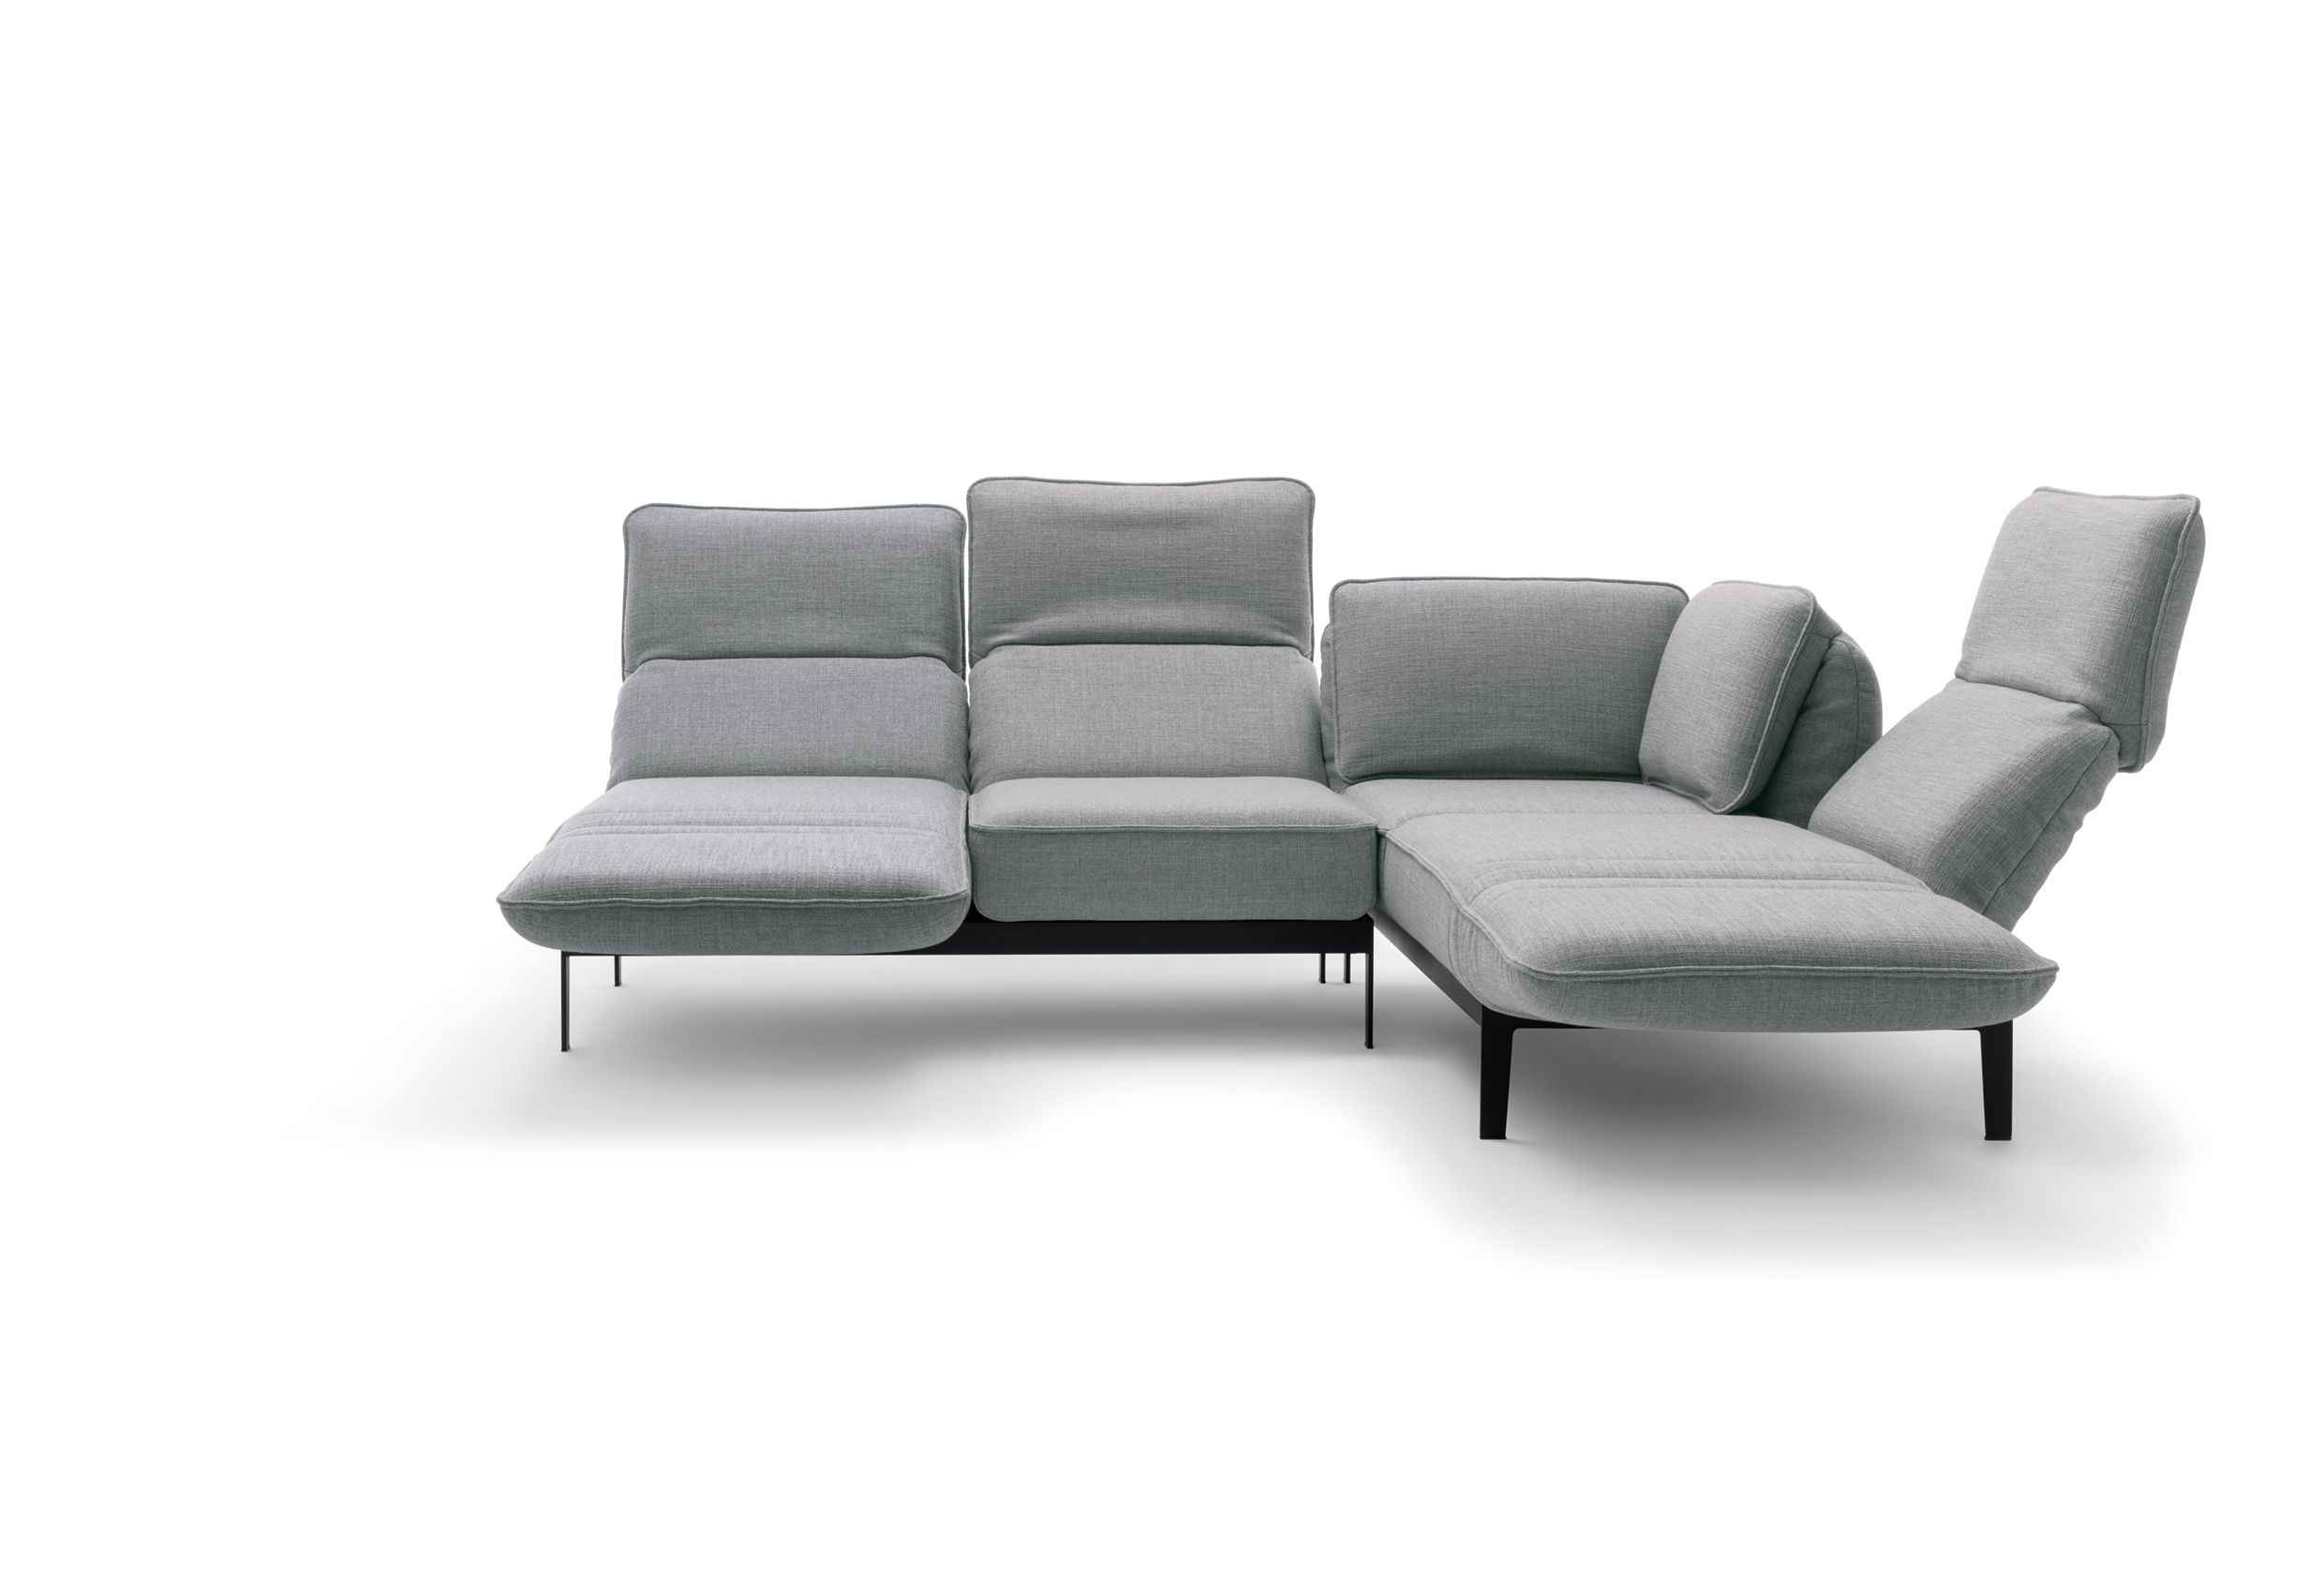 Benz Couch Rolf Benz Mera Sofa Bed Available Comfort Options For Sitting